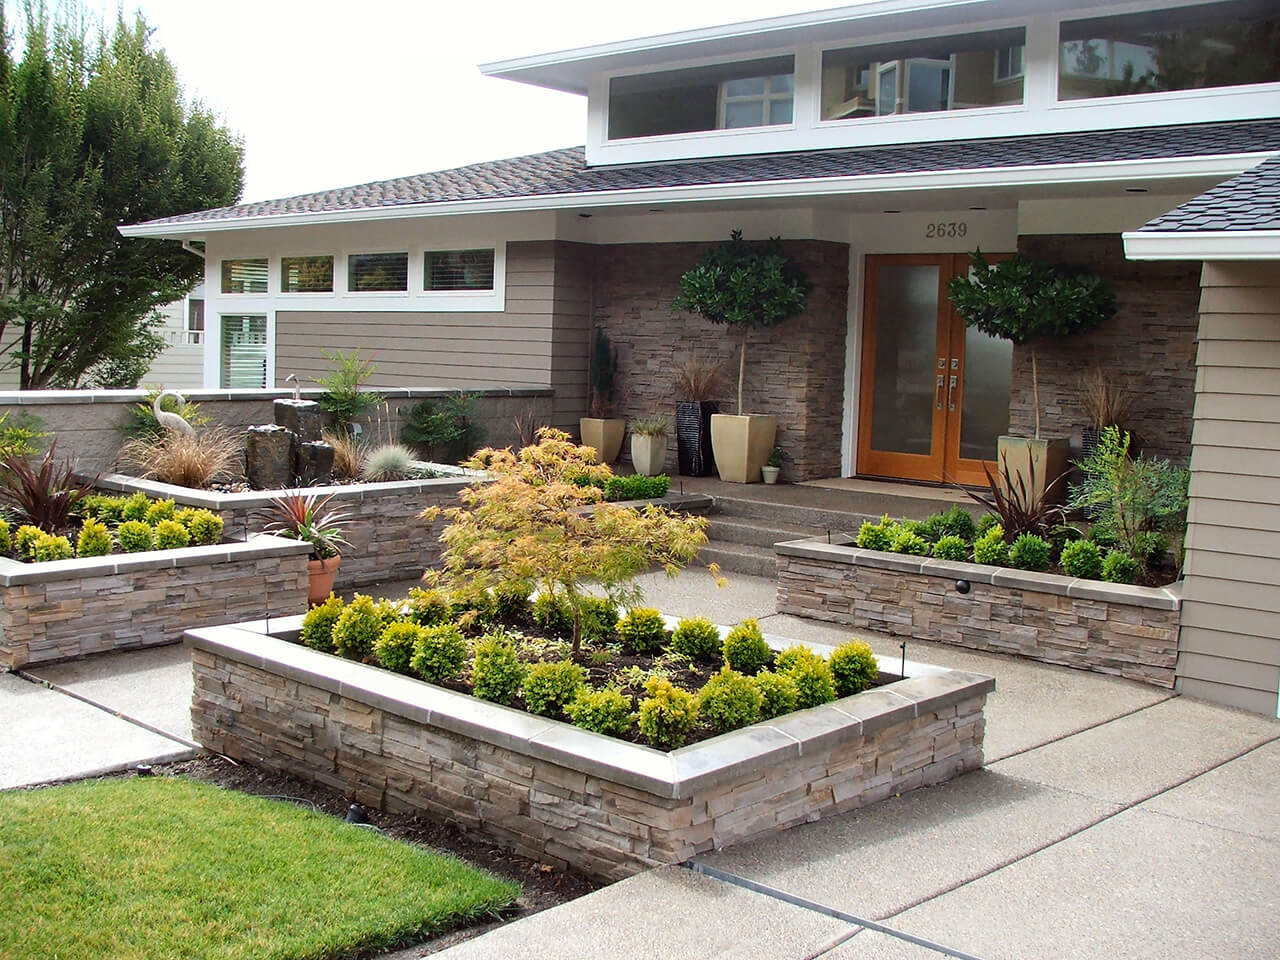 20 brilliant front garden landscaping ideas style motivation for Home front yard design